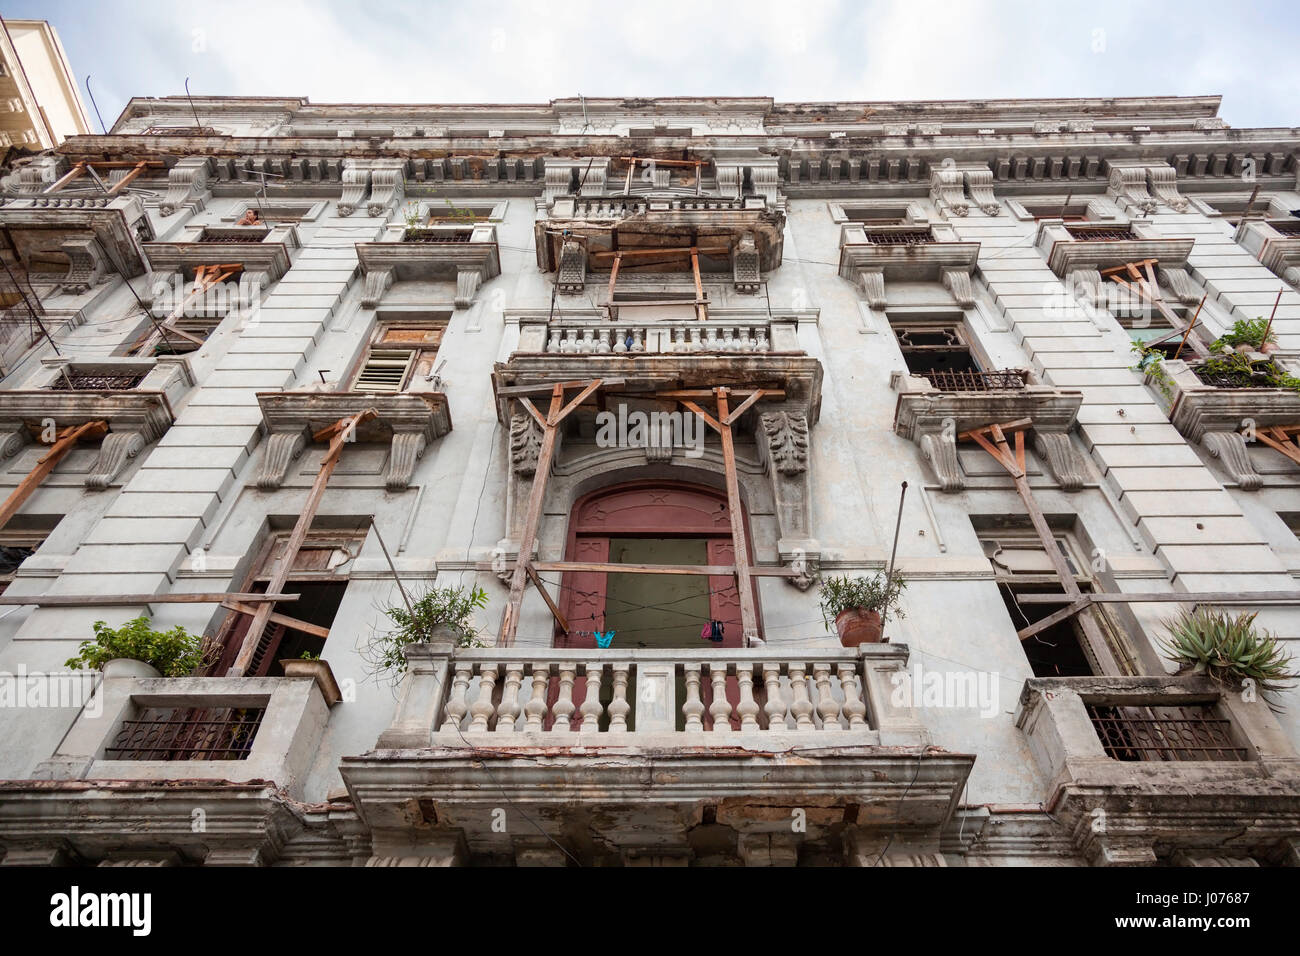 Balconies being stabilized by wooden joists on a decrepit apartment building in Old Havana, Cuba. - Stock Image